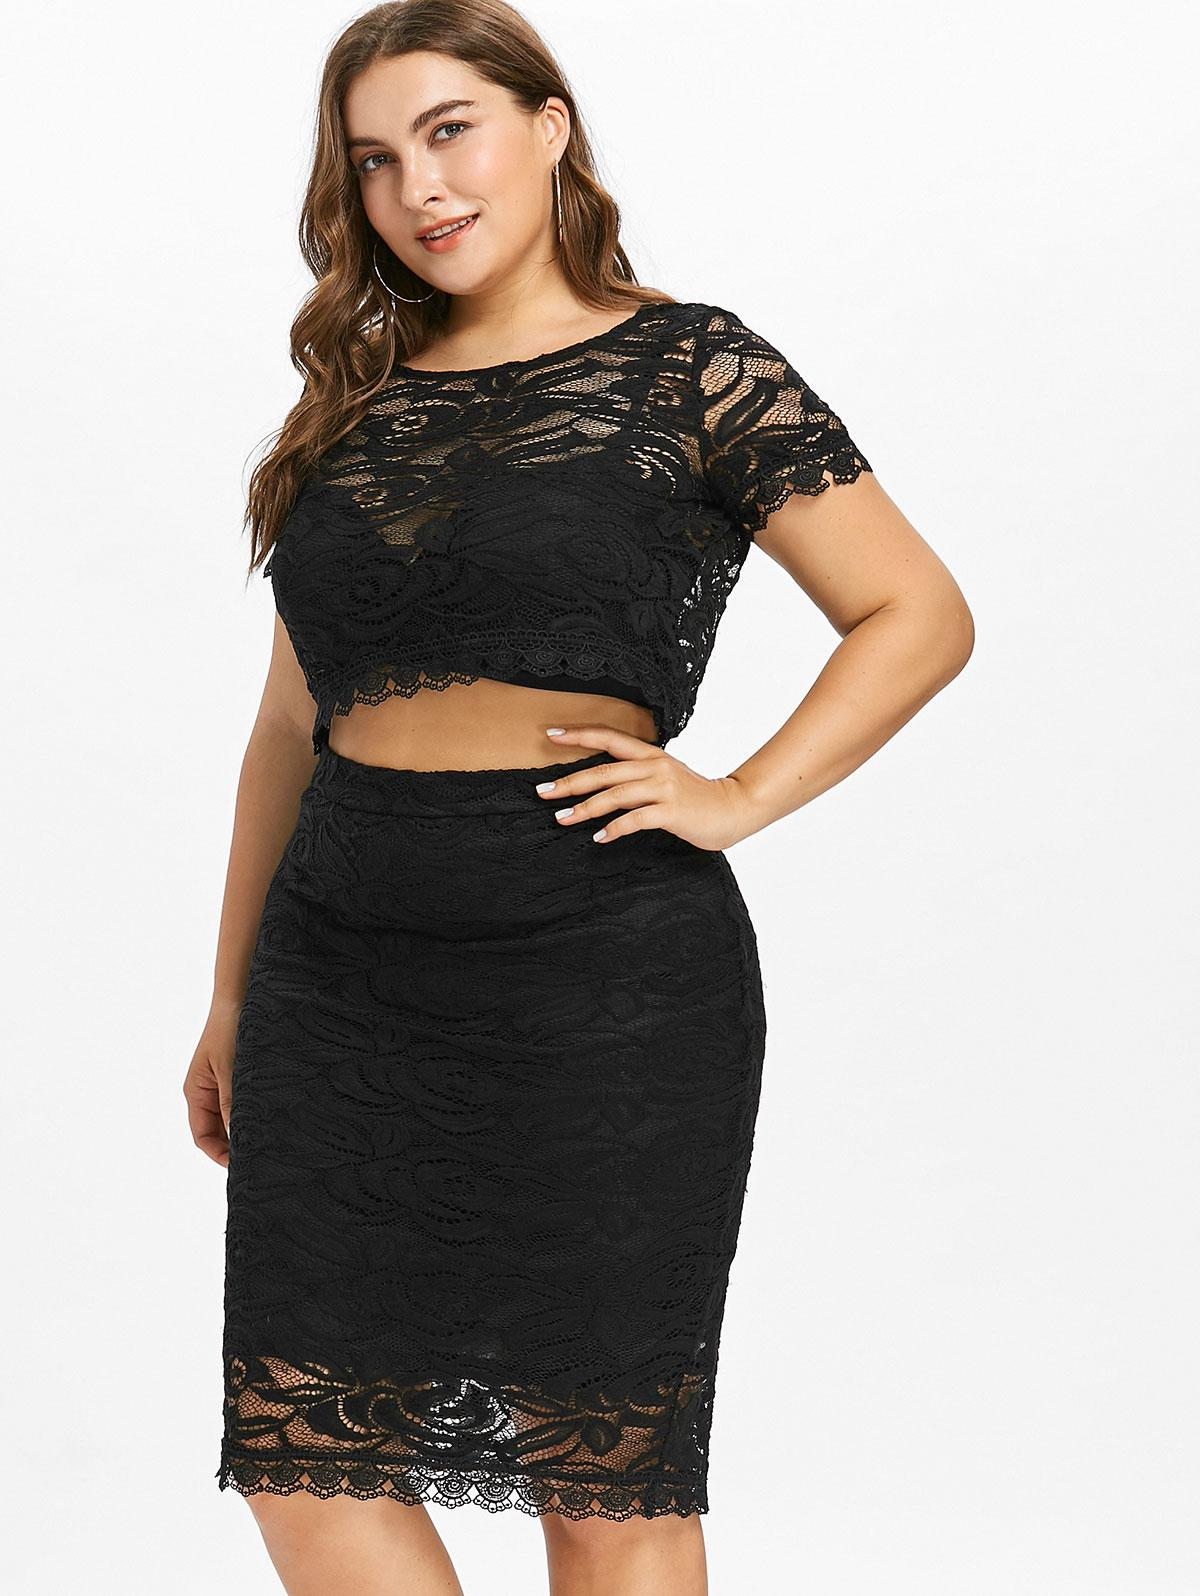 2019 Gamiss Plus Size Lace Two Piece Women Set Summer Short Sleeves O Neck  Crop Top Bodycon Set 2018 New Fashions Women Suit From Avive b5e8181128ce